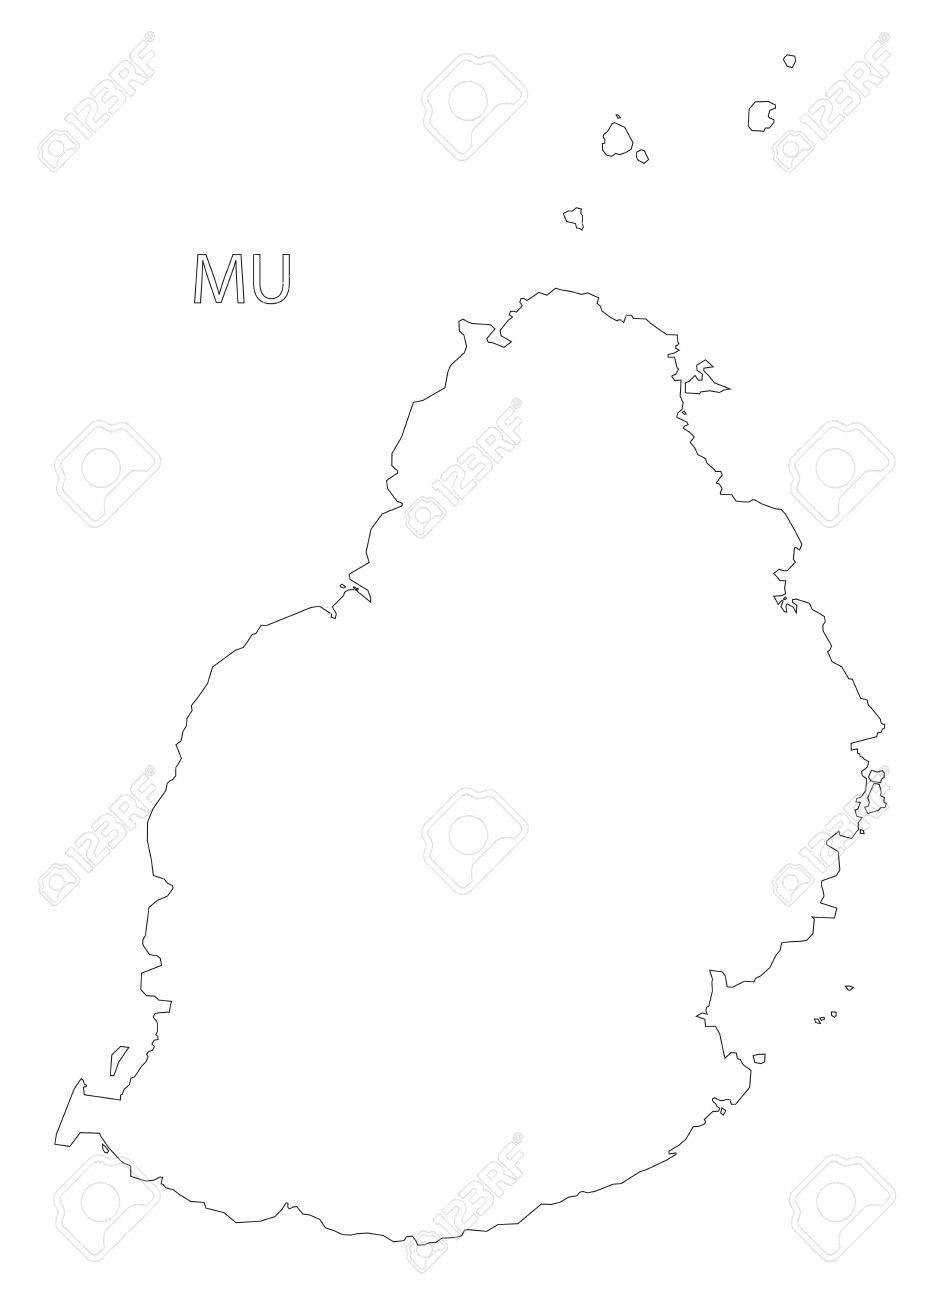 Mauritius Outline Silhouette Map Illustration With Black Shape ...